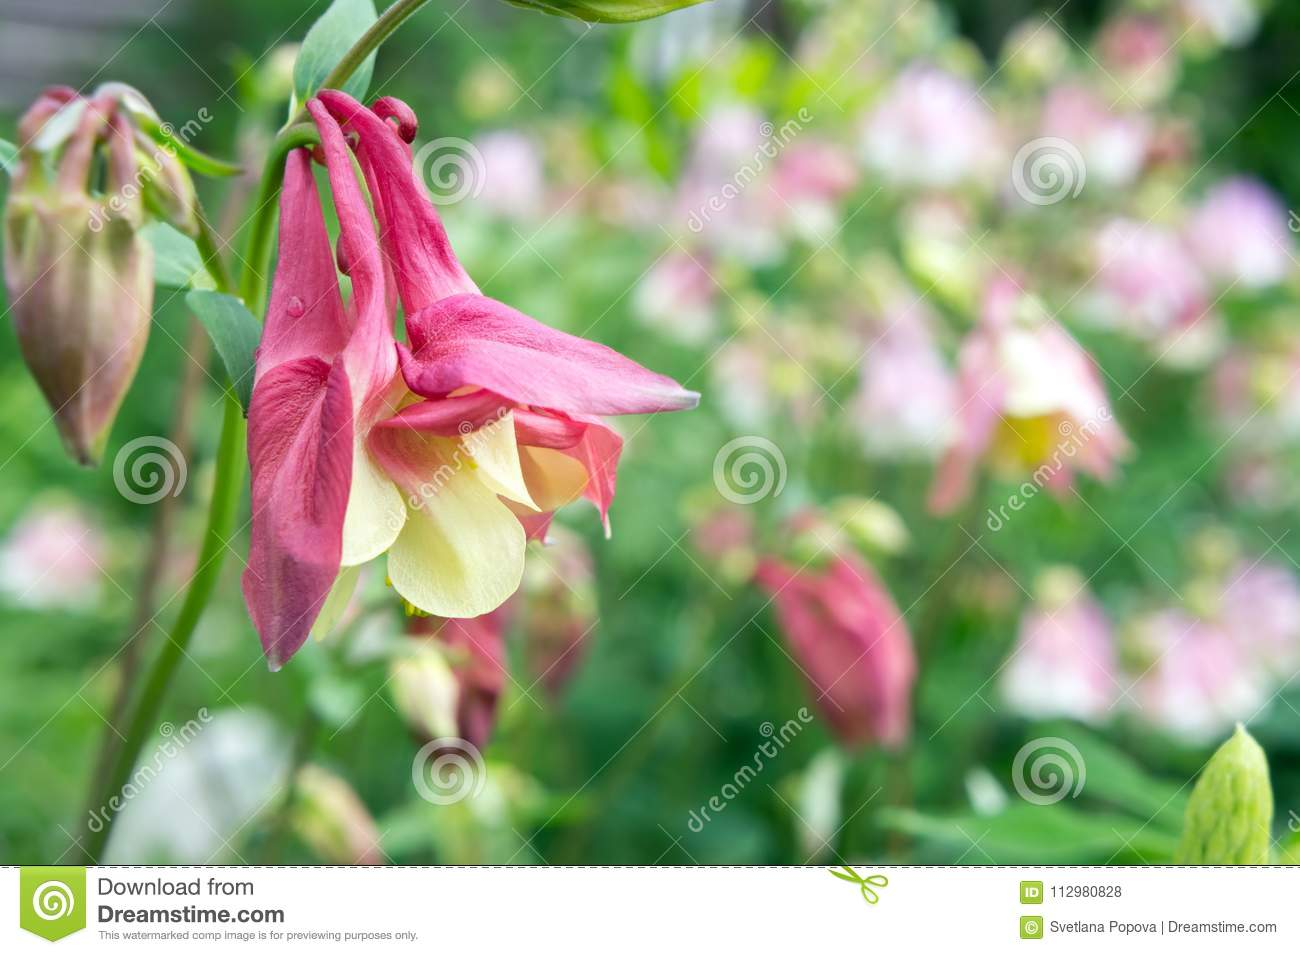 Flower of red-yellow Aquilegia Aquilegia canadensis growing on a bed in the garden.